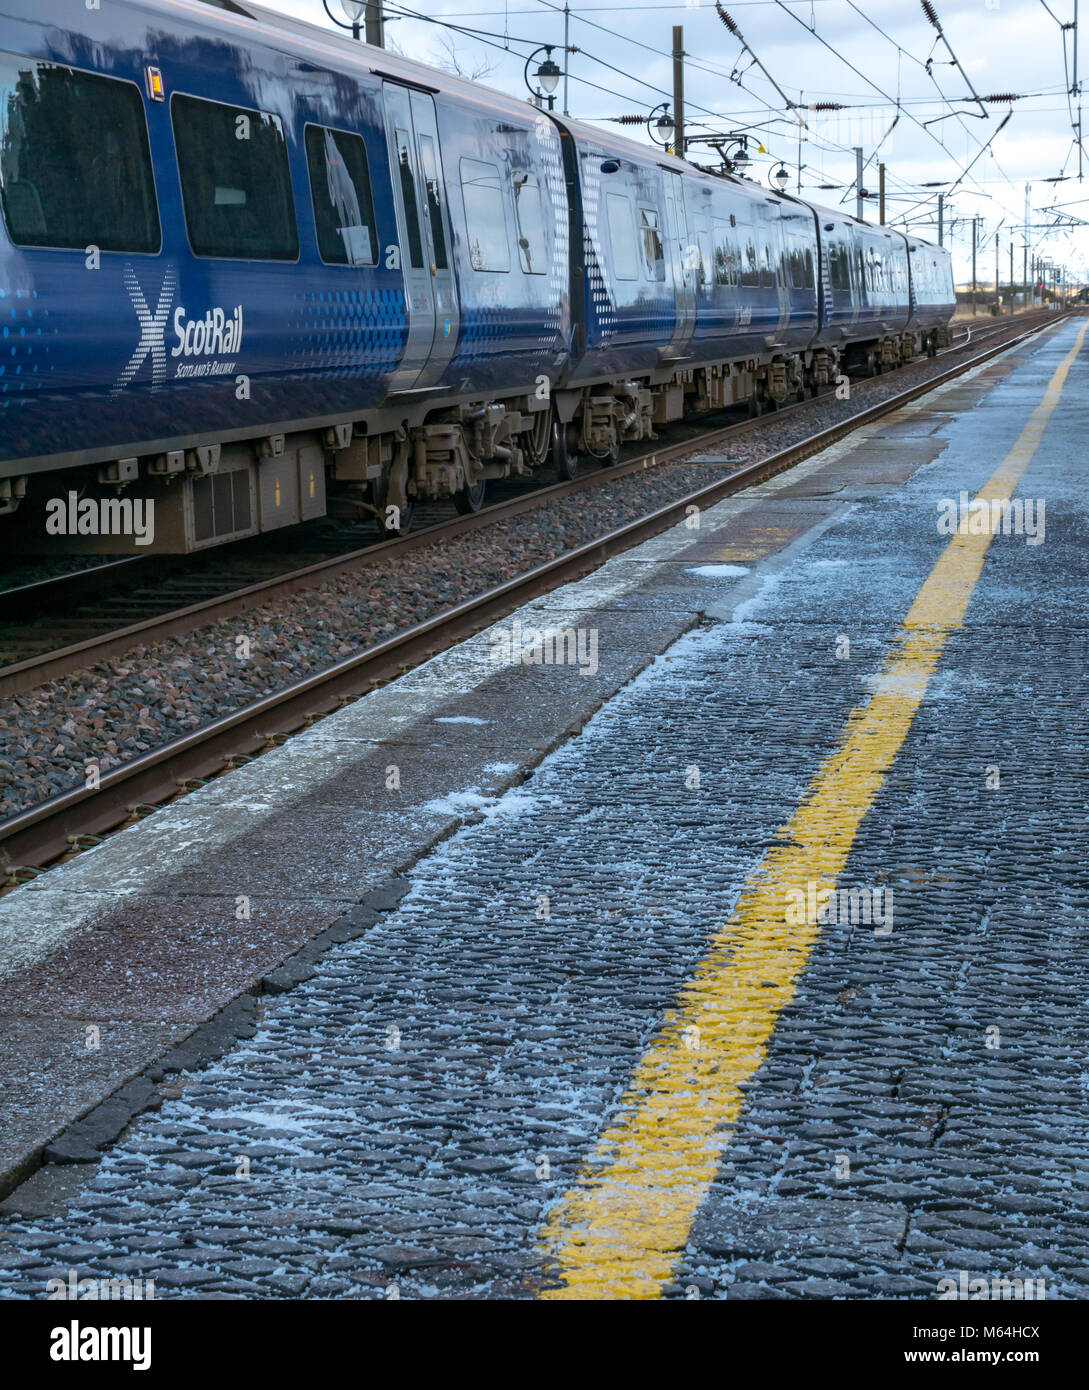 Close up of ScotRail local commuter train at Drem railway station in Winter with salt on station platform, East - Stock Image